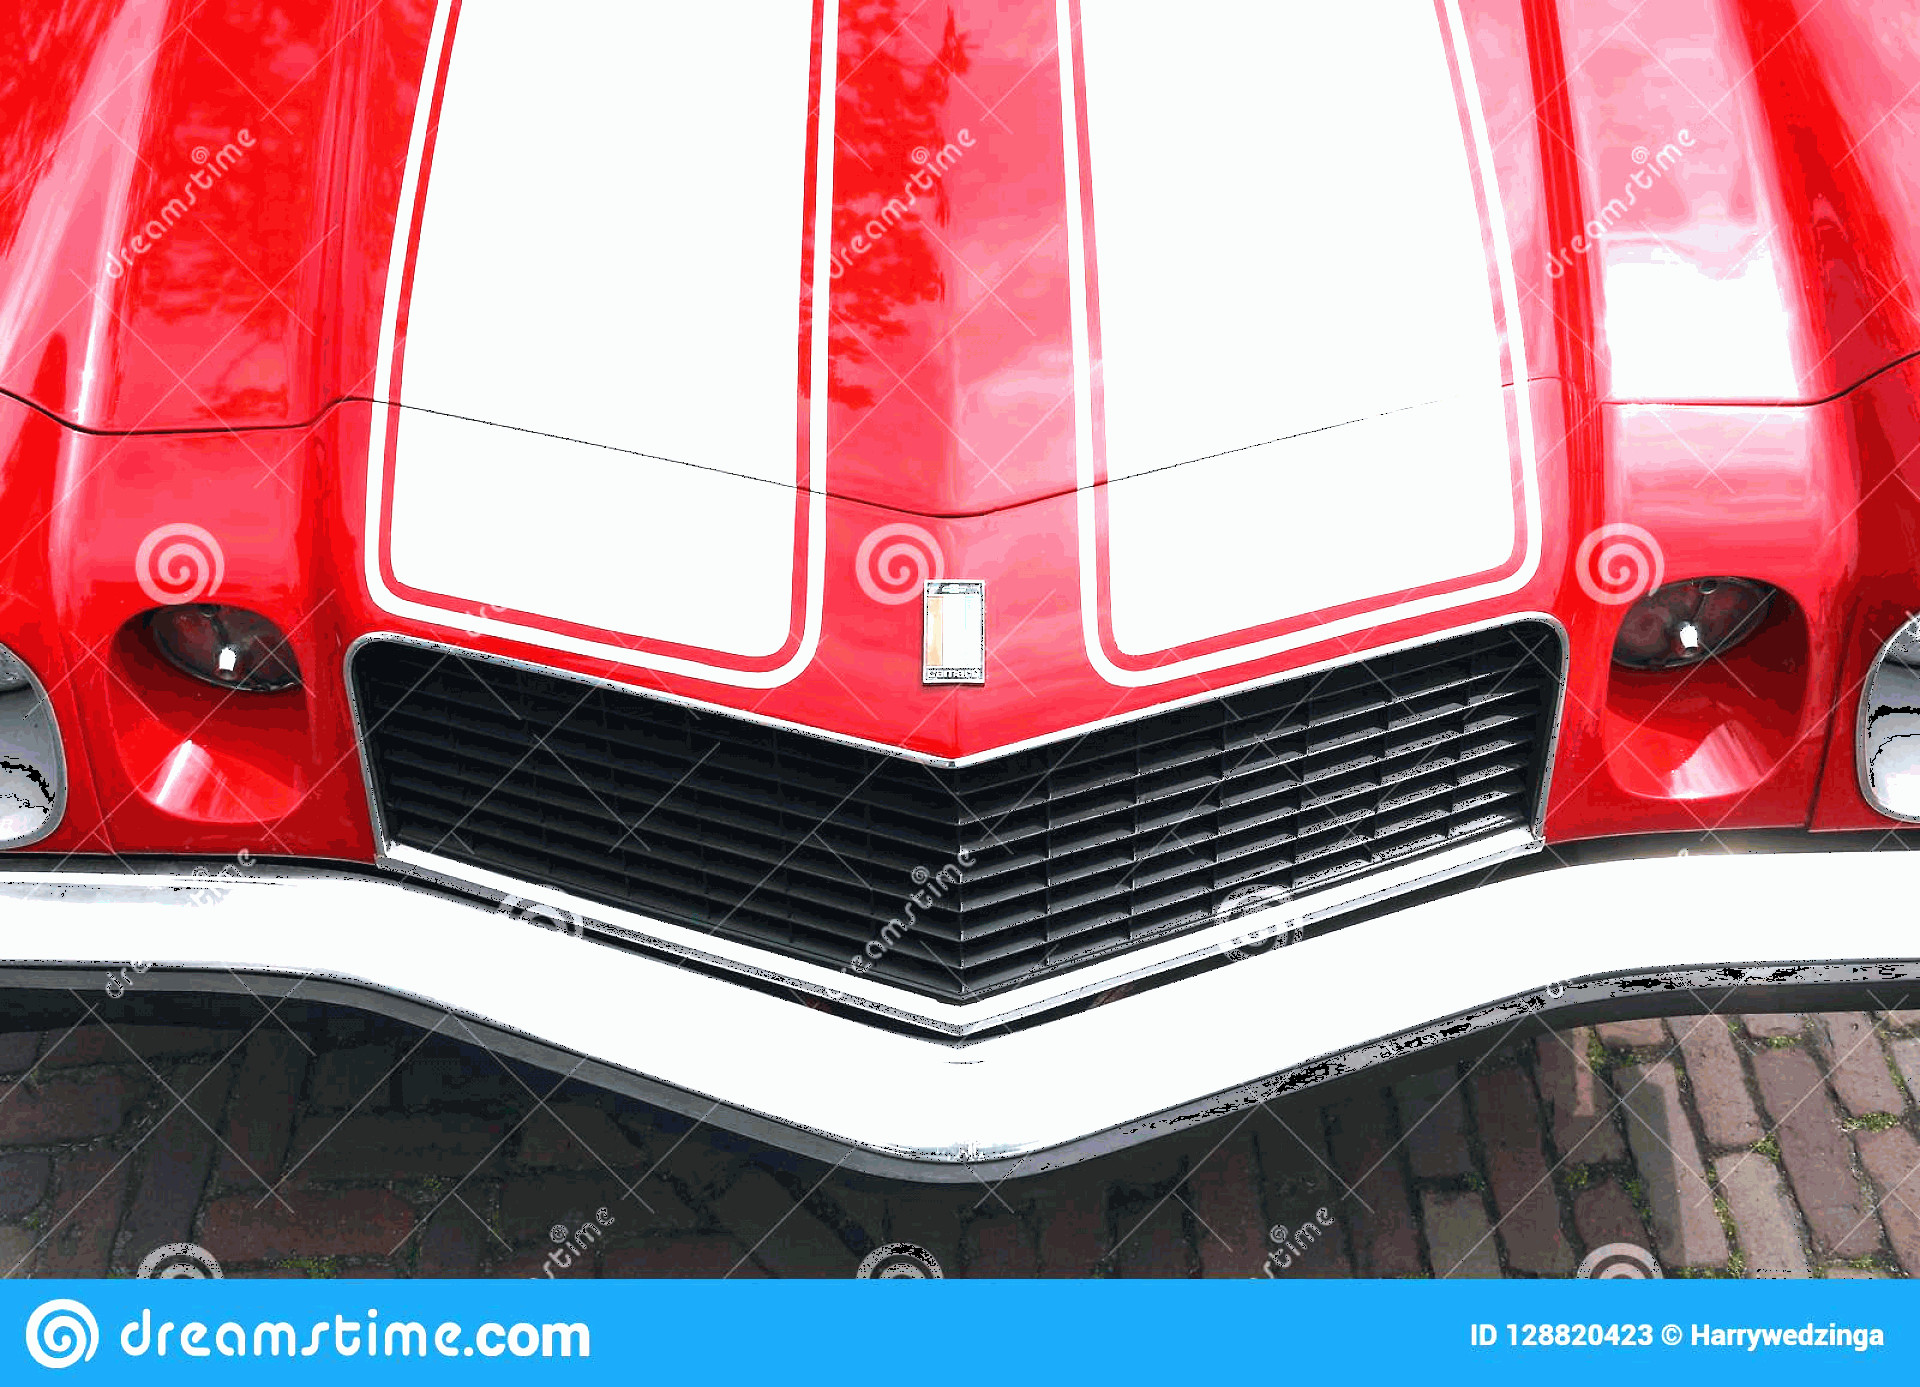 Camaro SS Logo Vector: Camaro Engine Hood Logo Shield Franeker Friesland Netherlands May Top View Classic Red White Striped Chevrolet Image